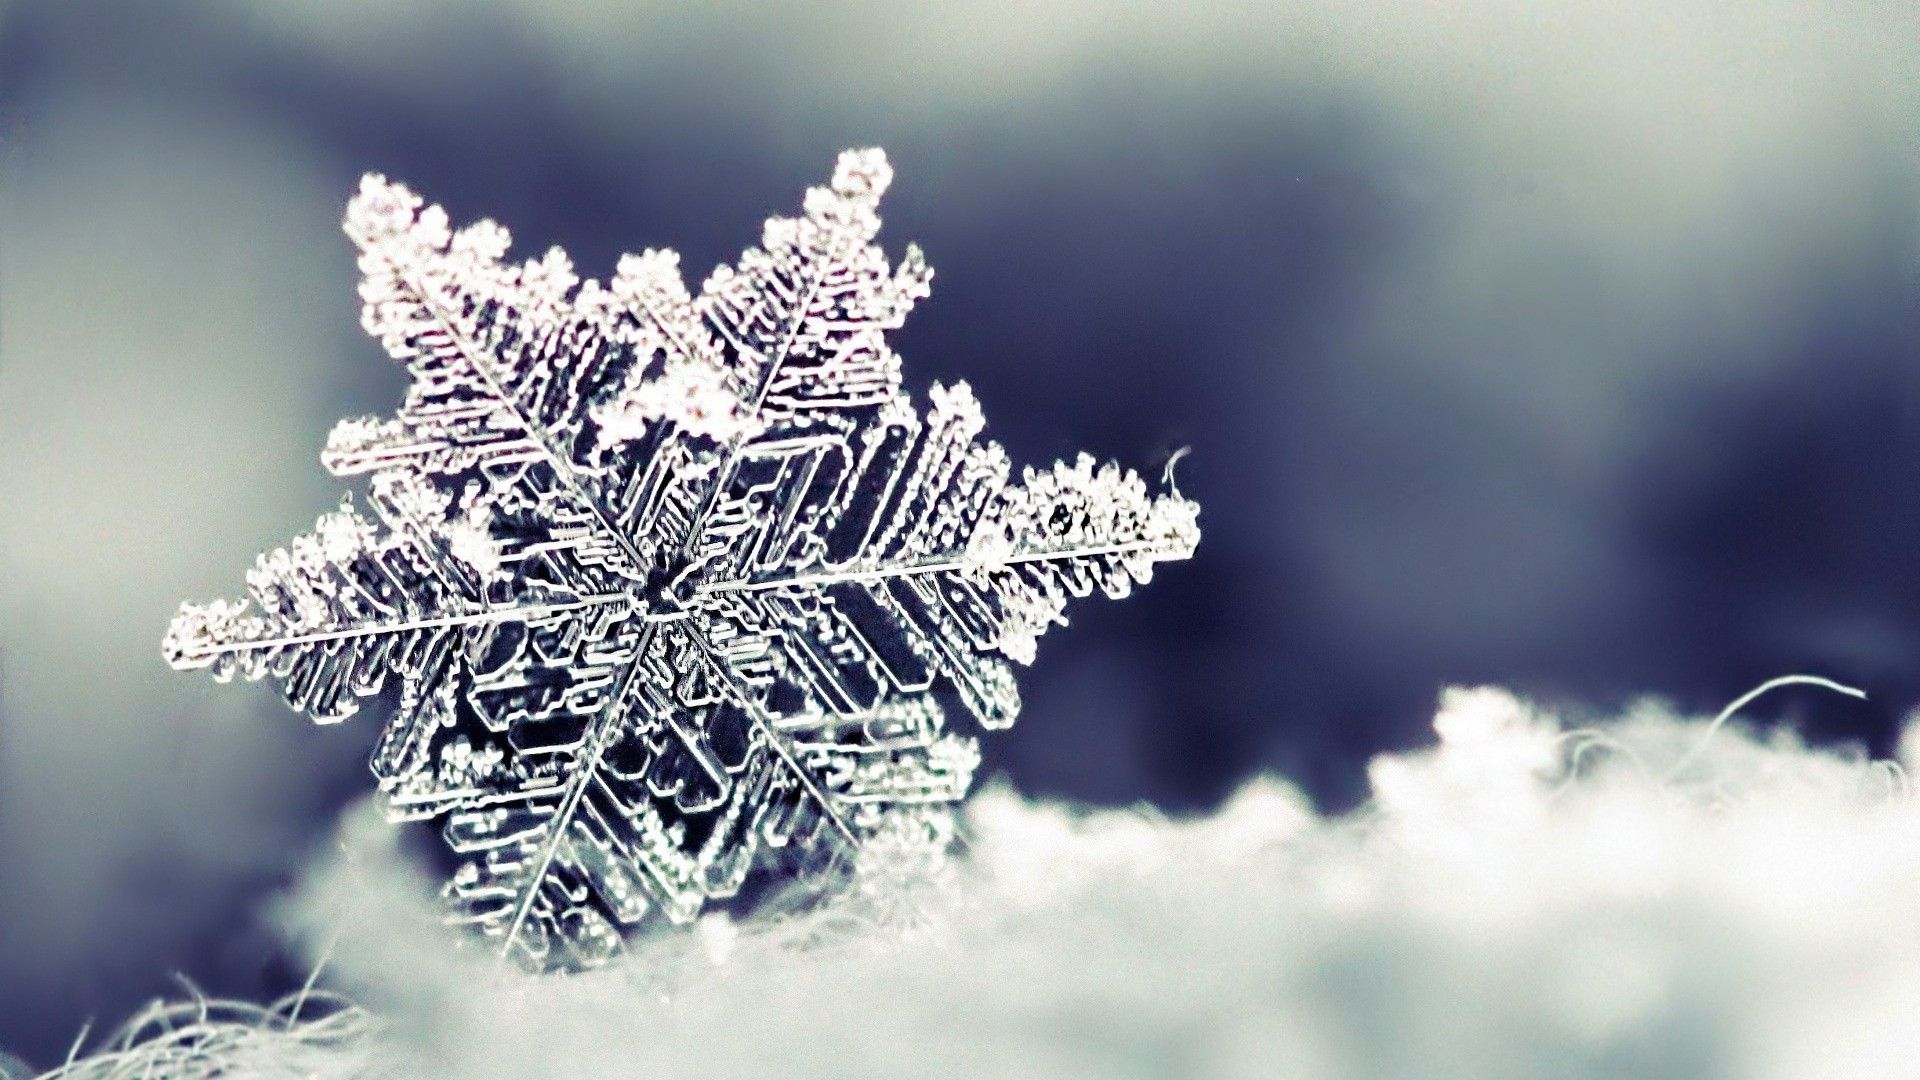 Snowflake Wallpaper Hd Images 3 HD Wallpapers Snowflake